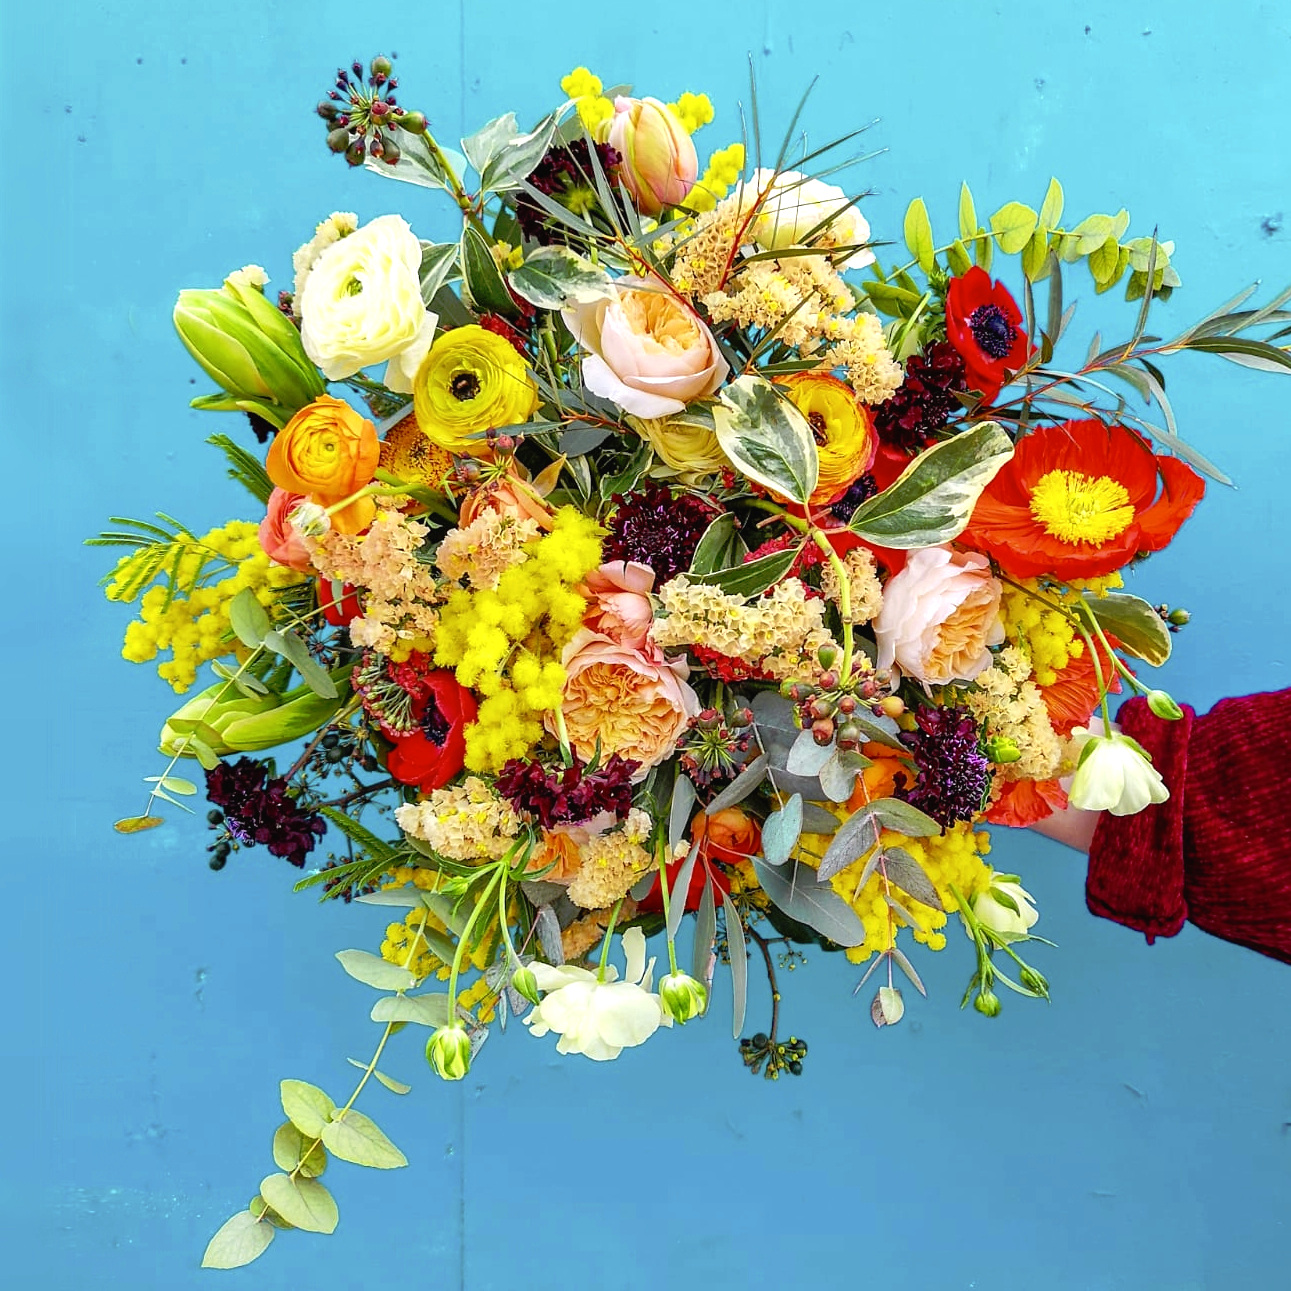 Spring Bouquet crop.jpg